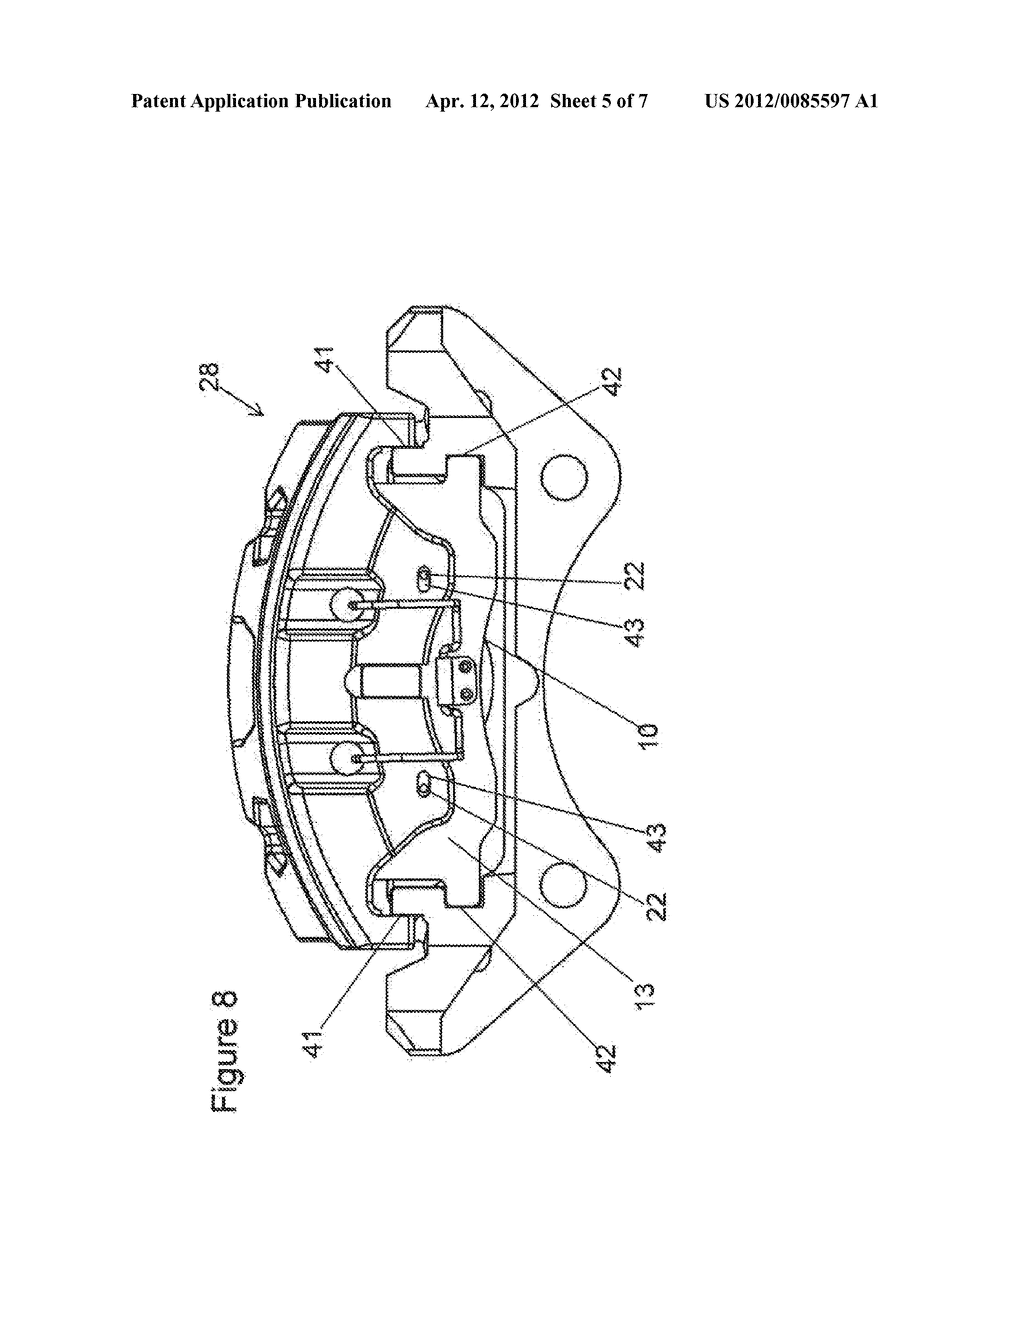 hight resolution of caliper assembly for disc brake system diagram schematic and image 06